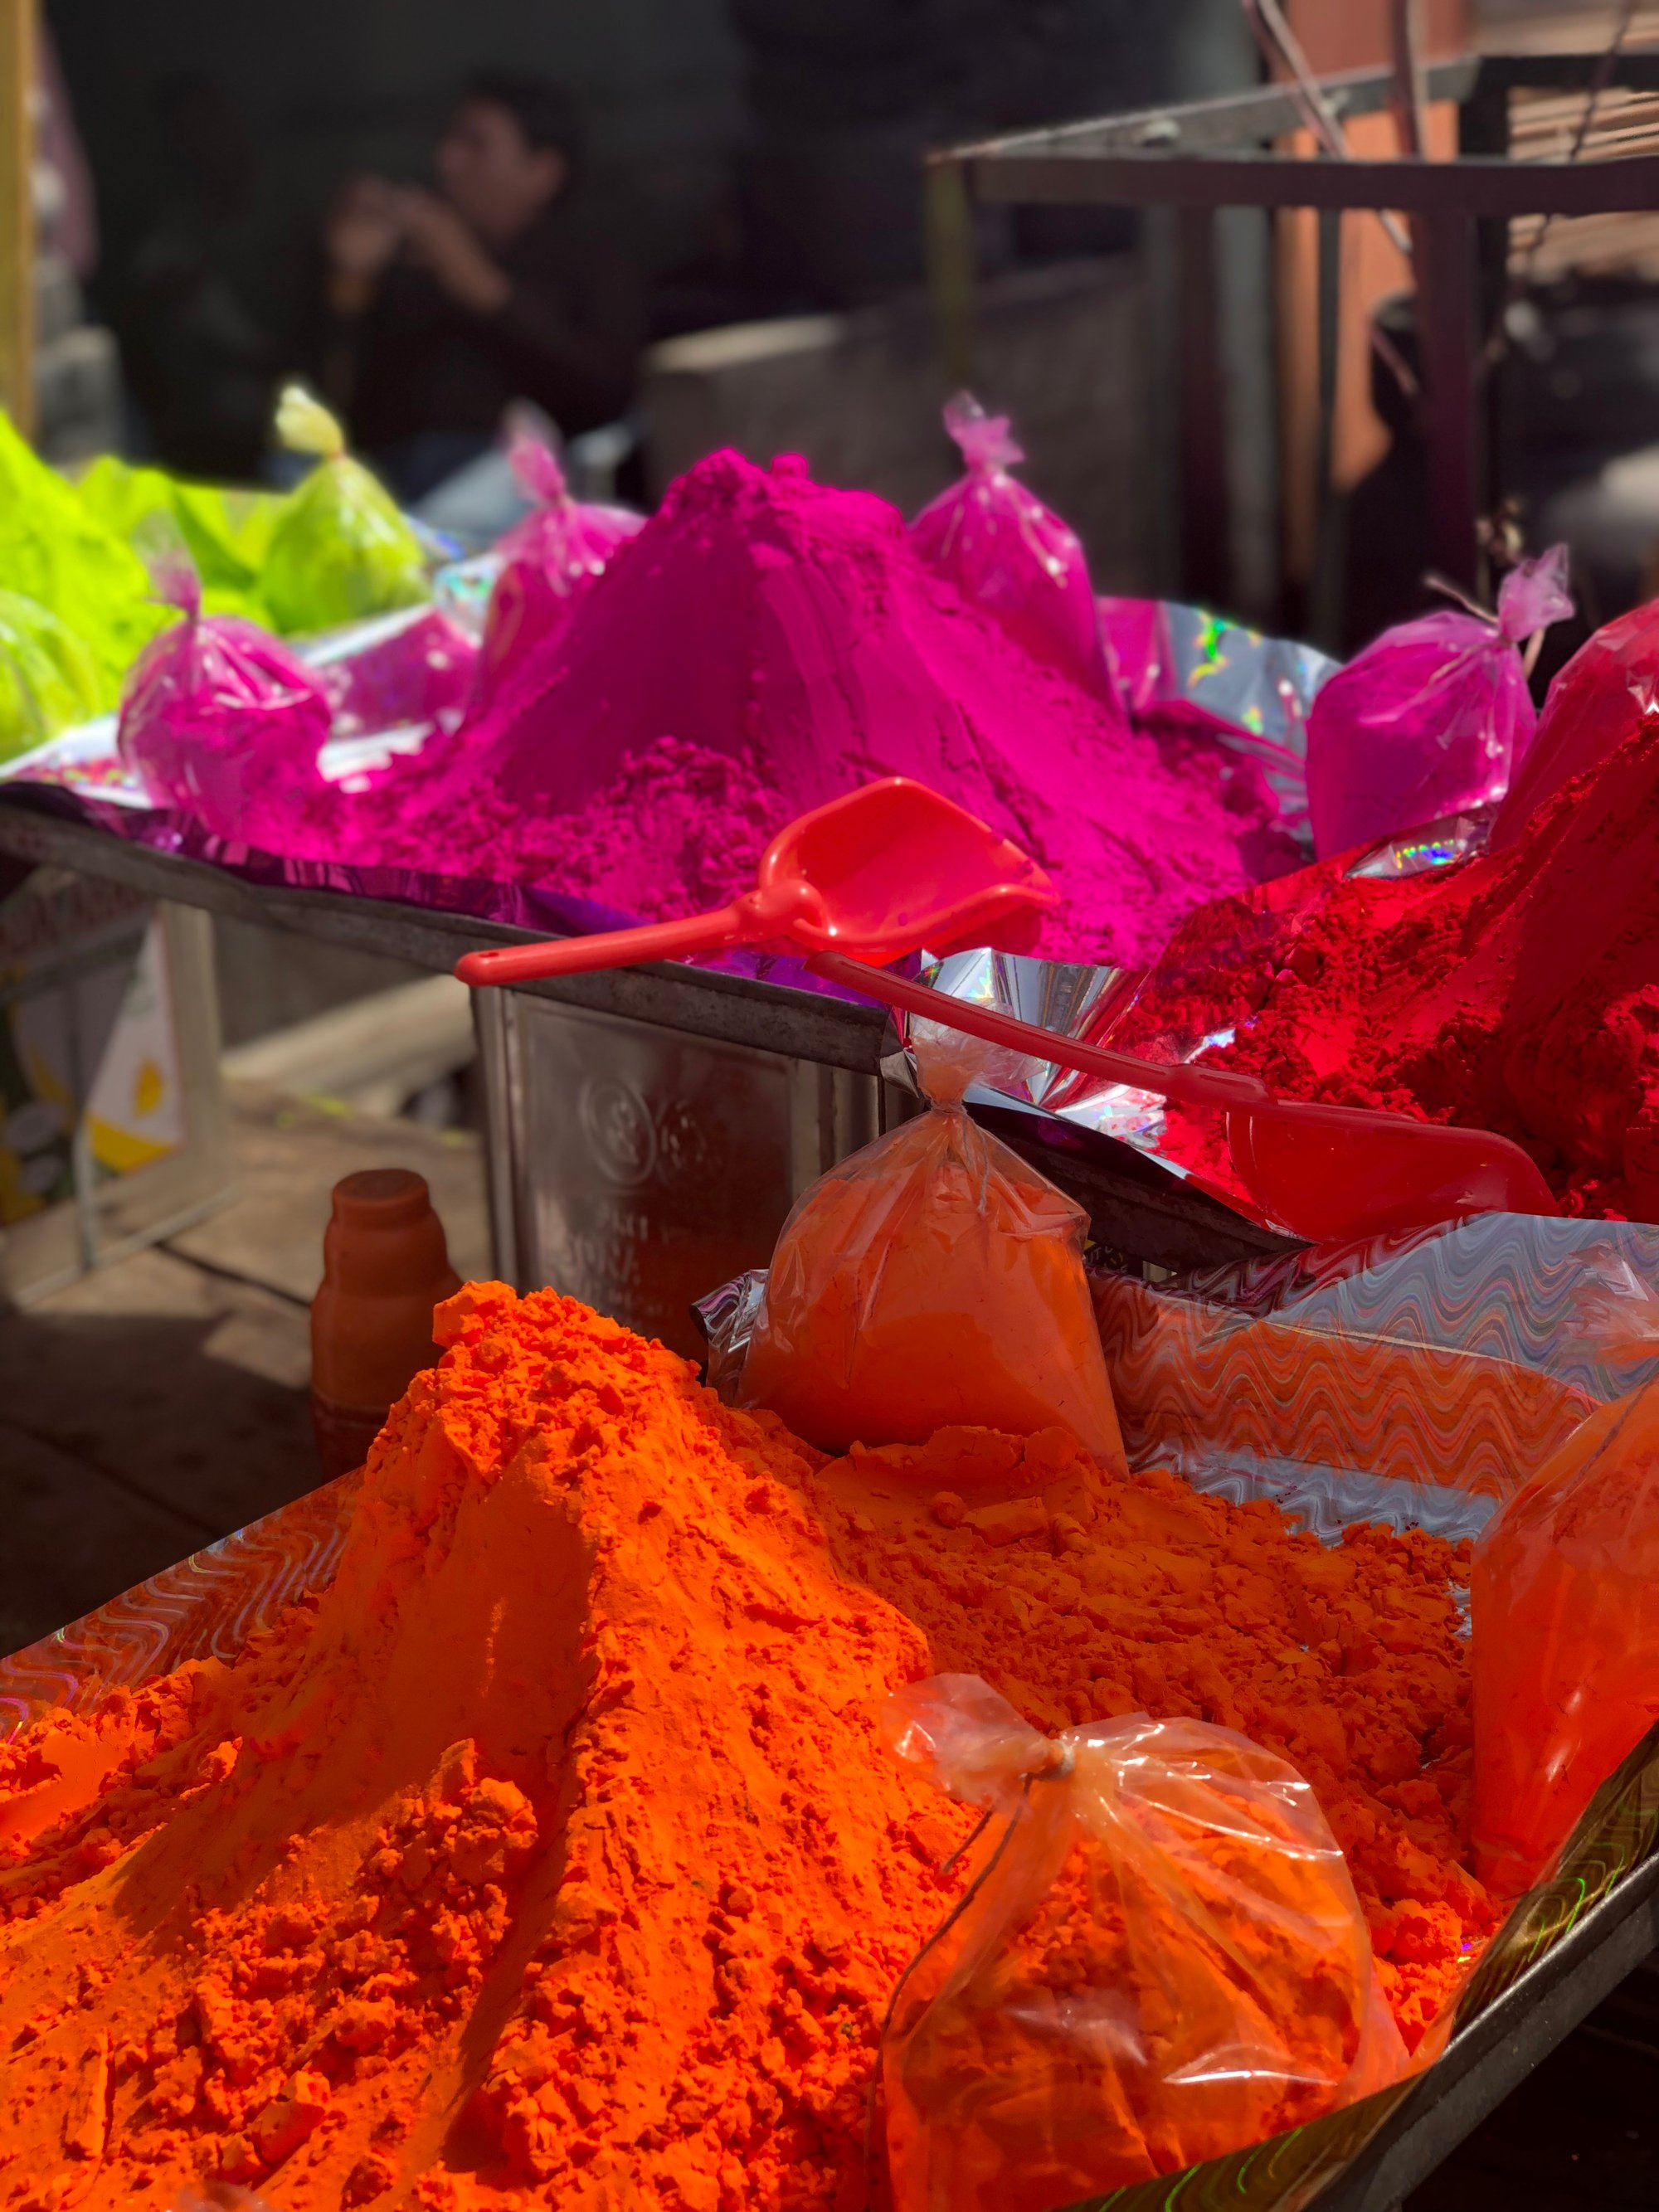 Powdered vegetable dye for Holi festival